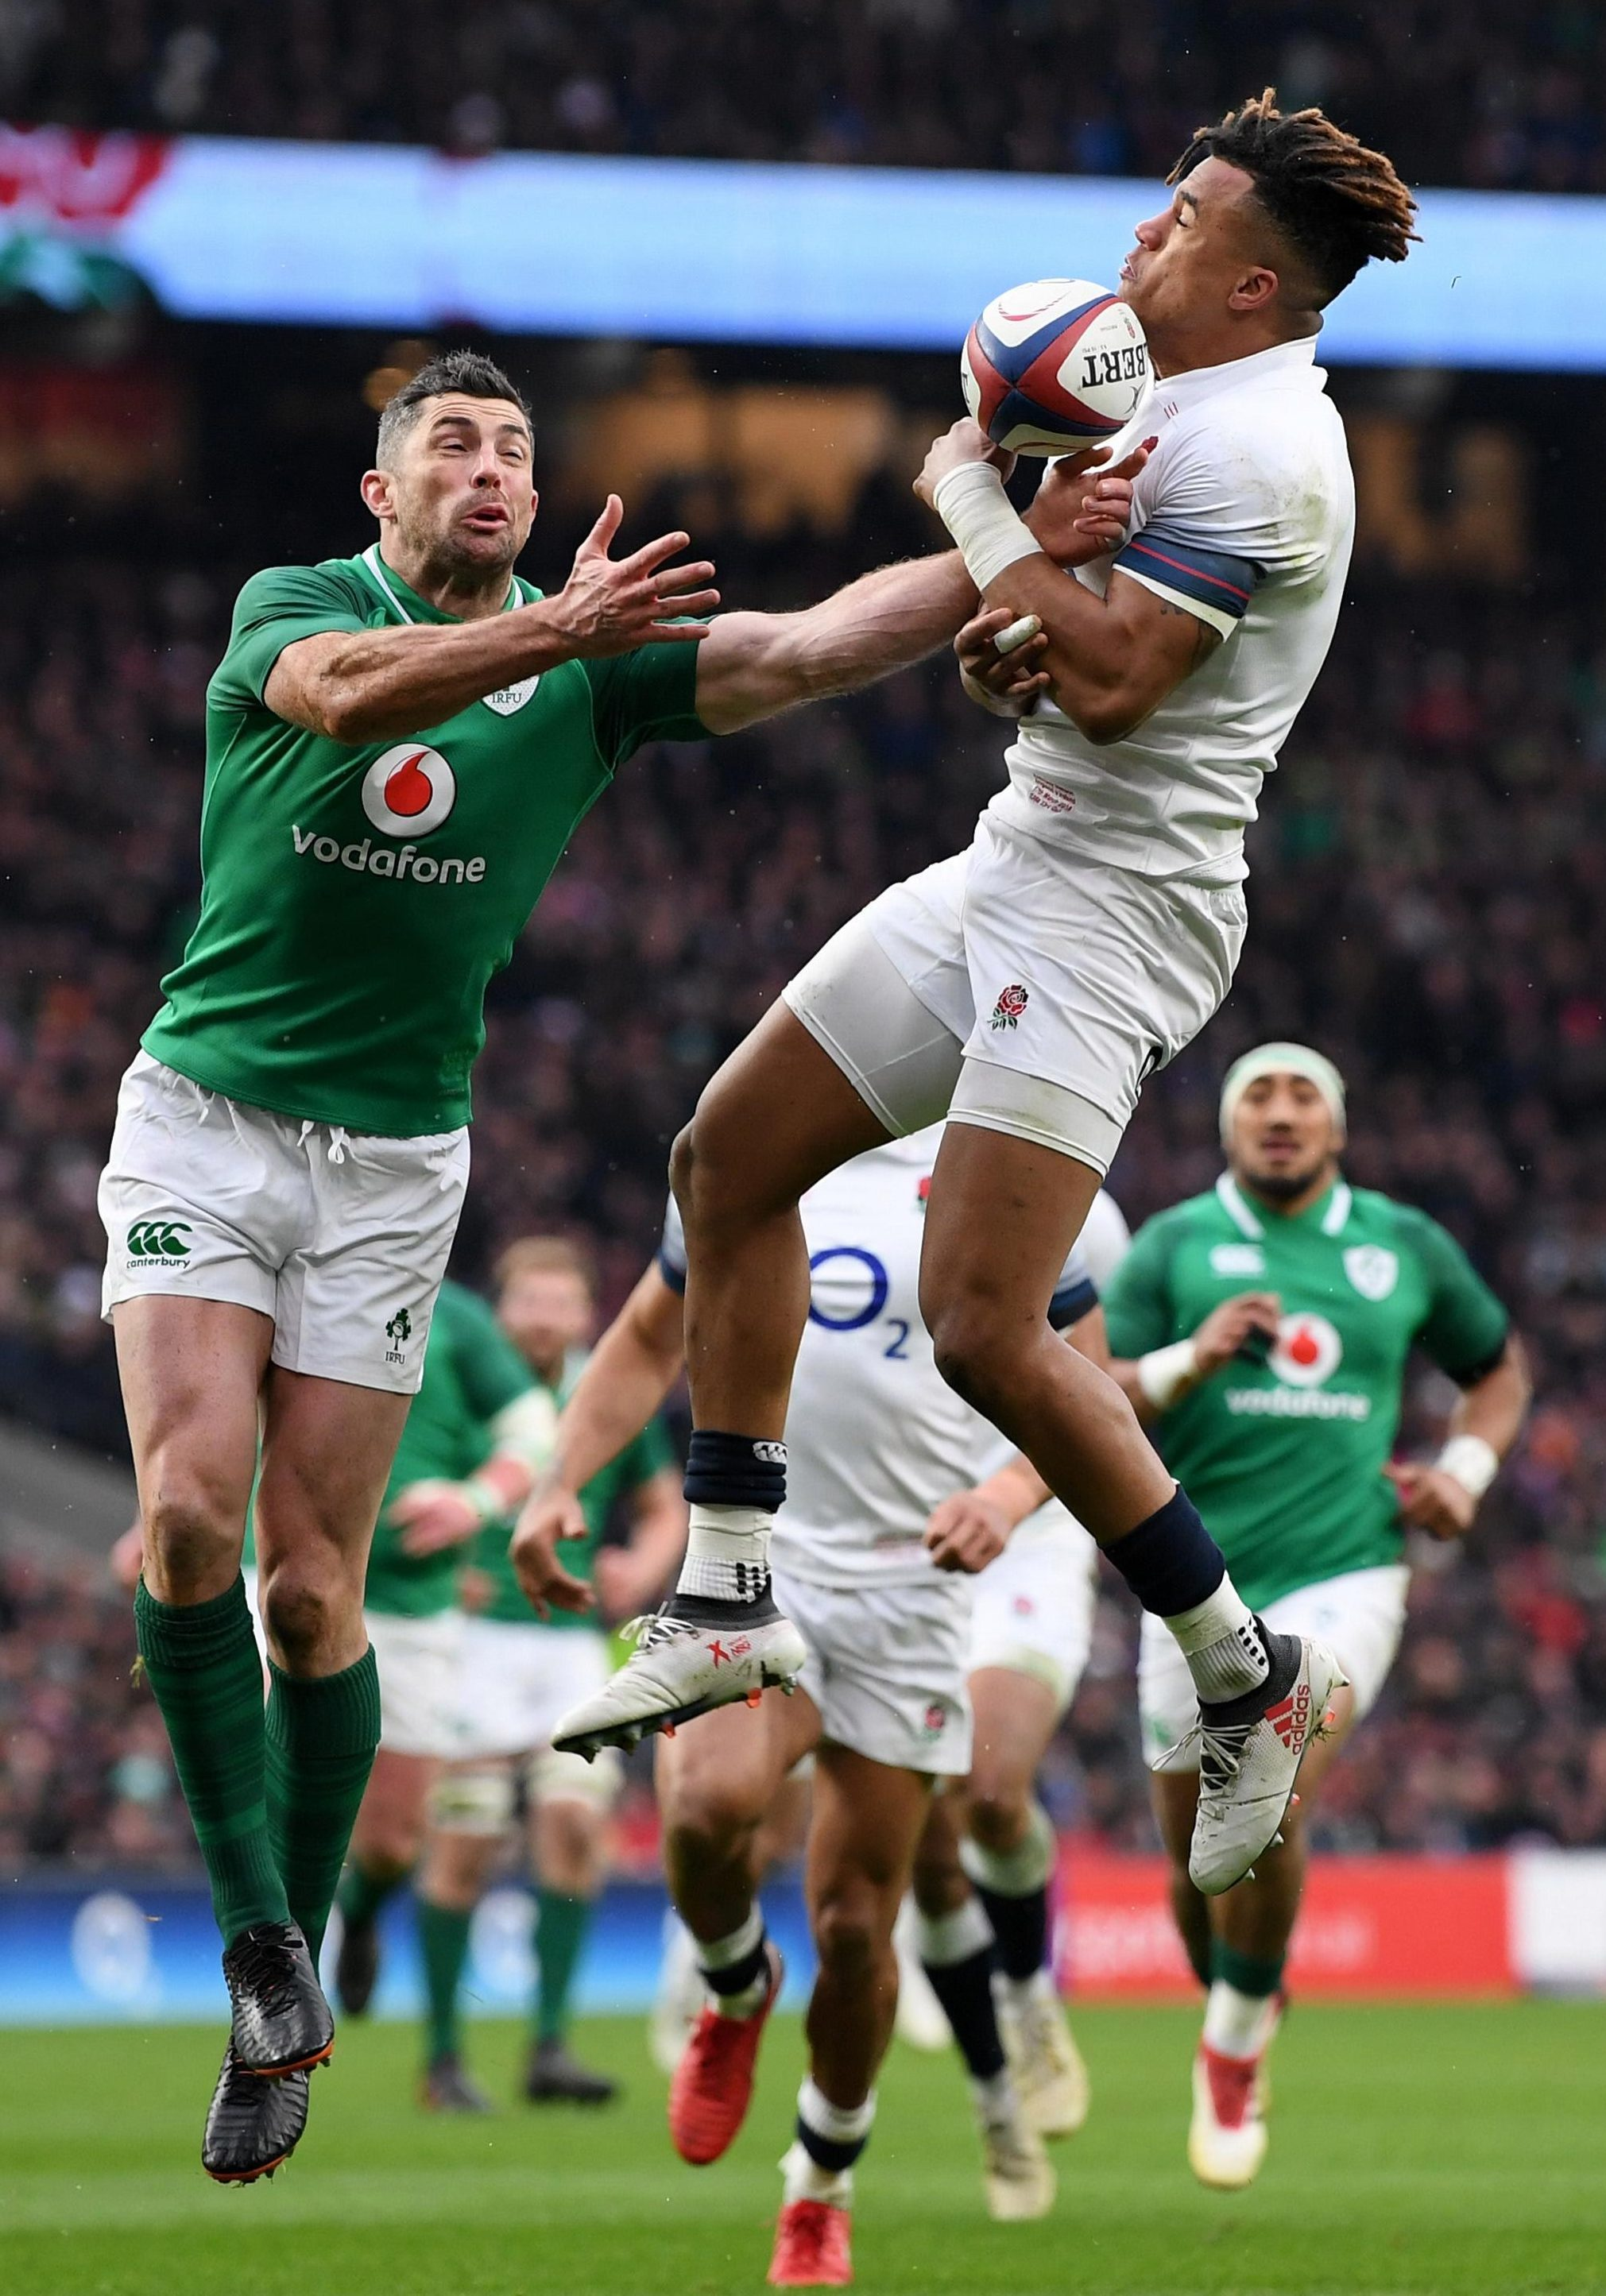 Anthony Watson first injured his Achilles against Ireland back in March